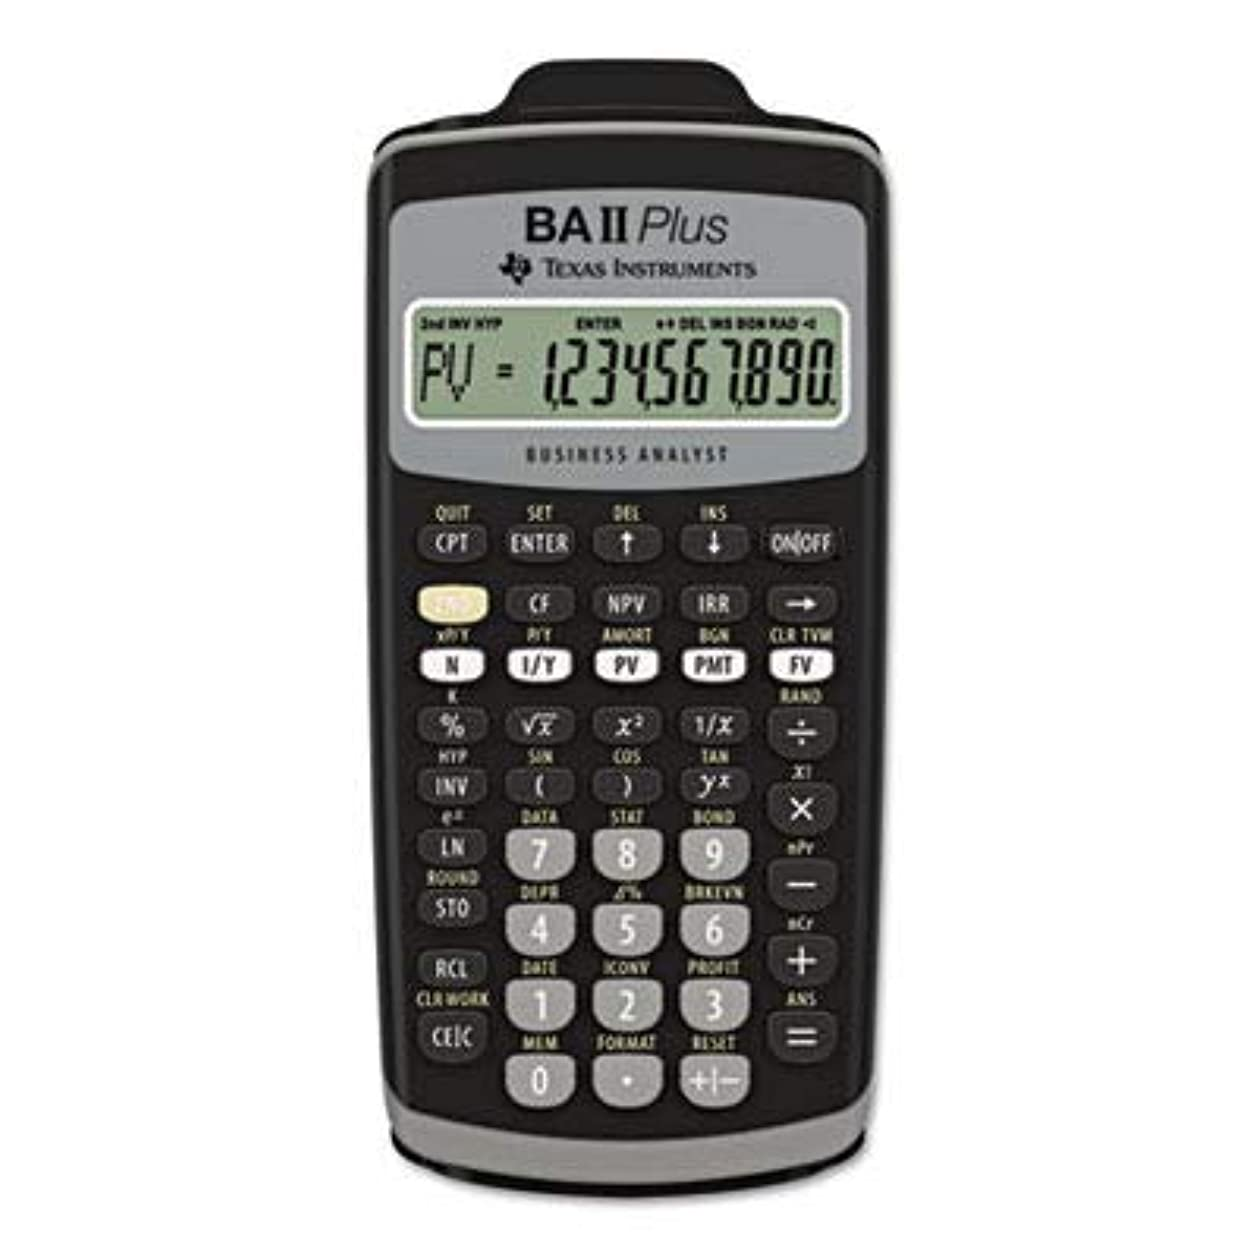 サーキュレーション百科事典フェザーTexas Instruments BAIIPLUS Financial Calculator